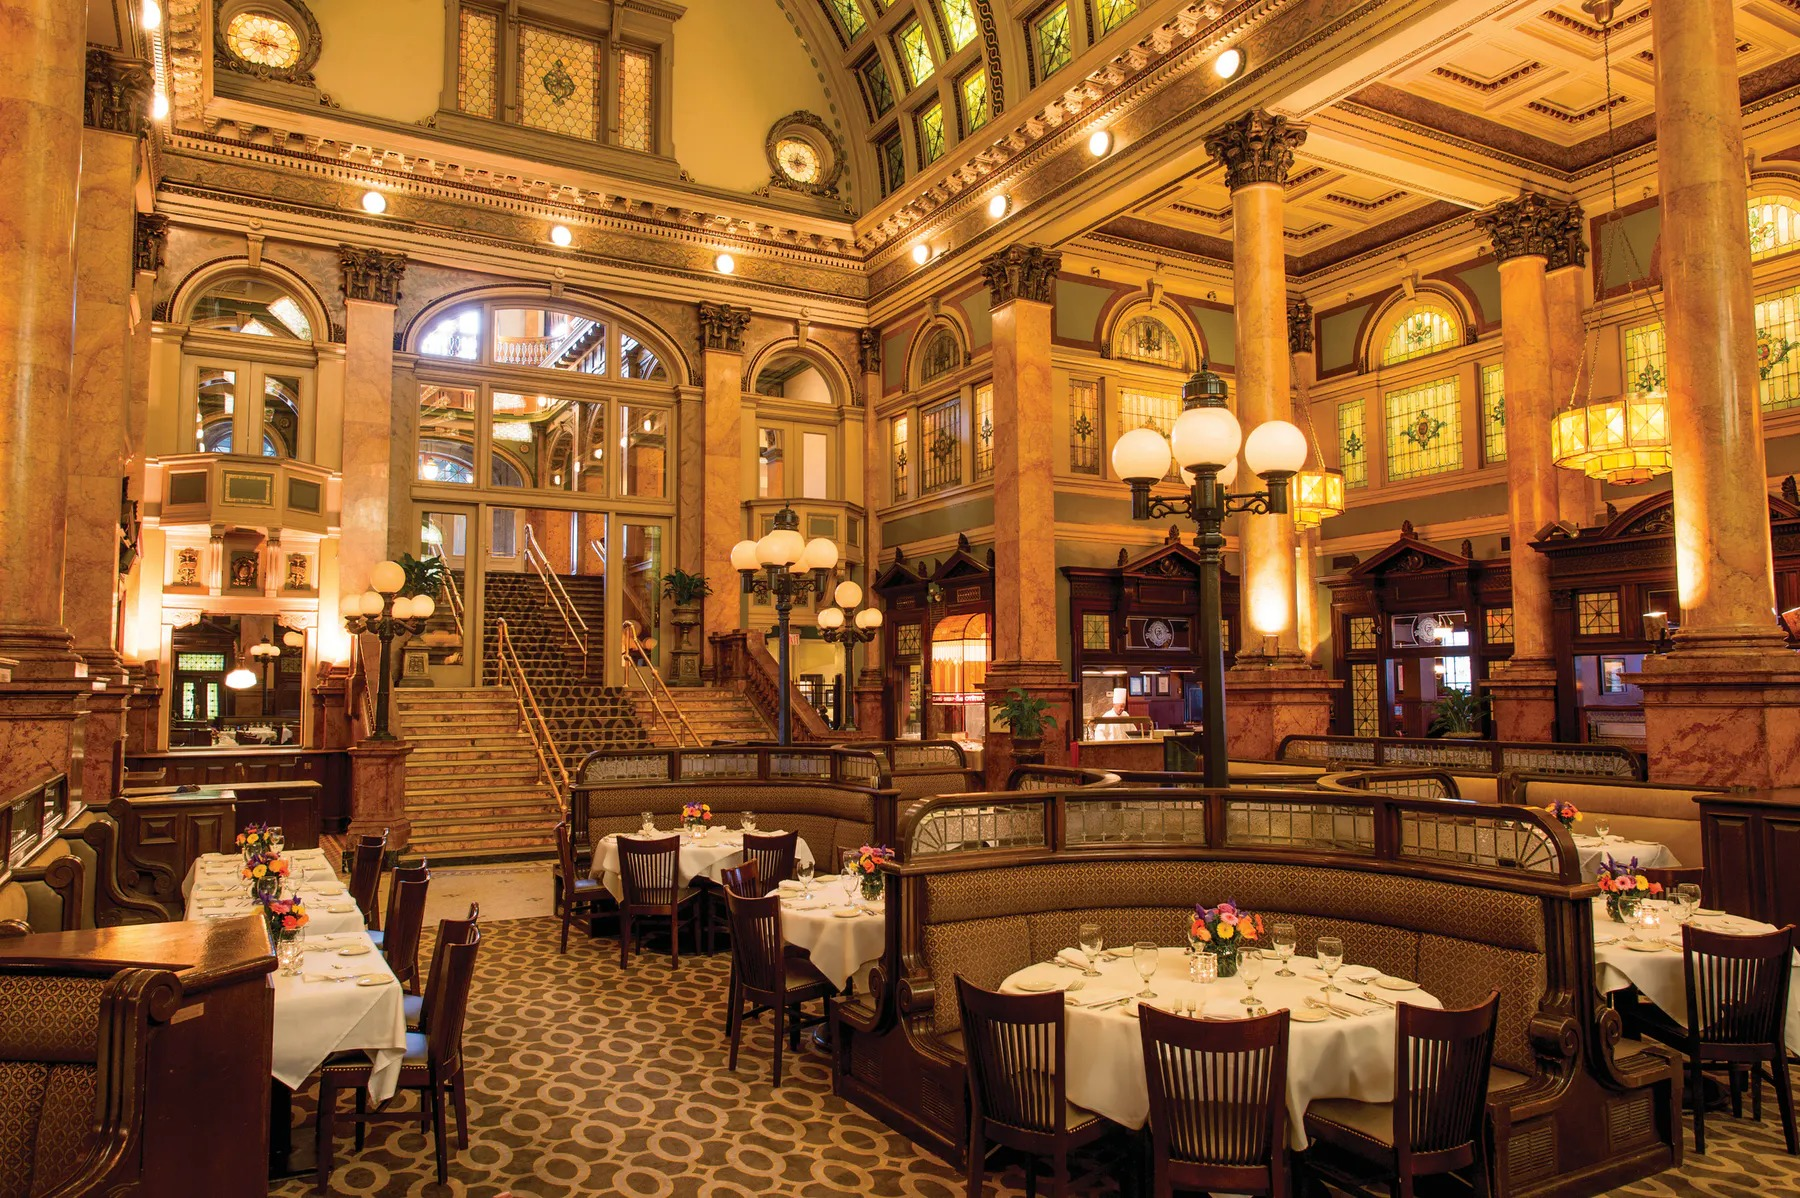 An opulent dining room with huge booths, long staircase, vaulted ceilings, old-style lamp posts, and stained glass